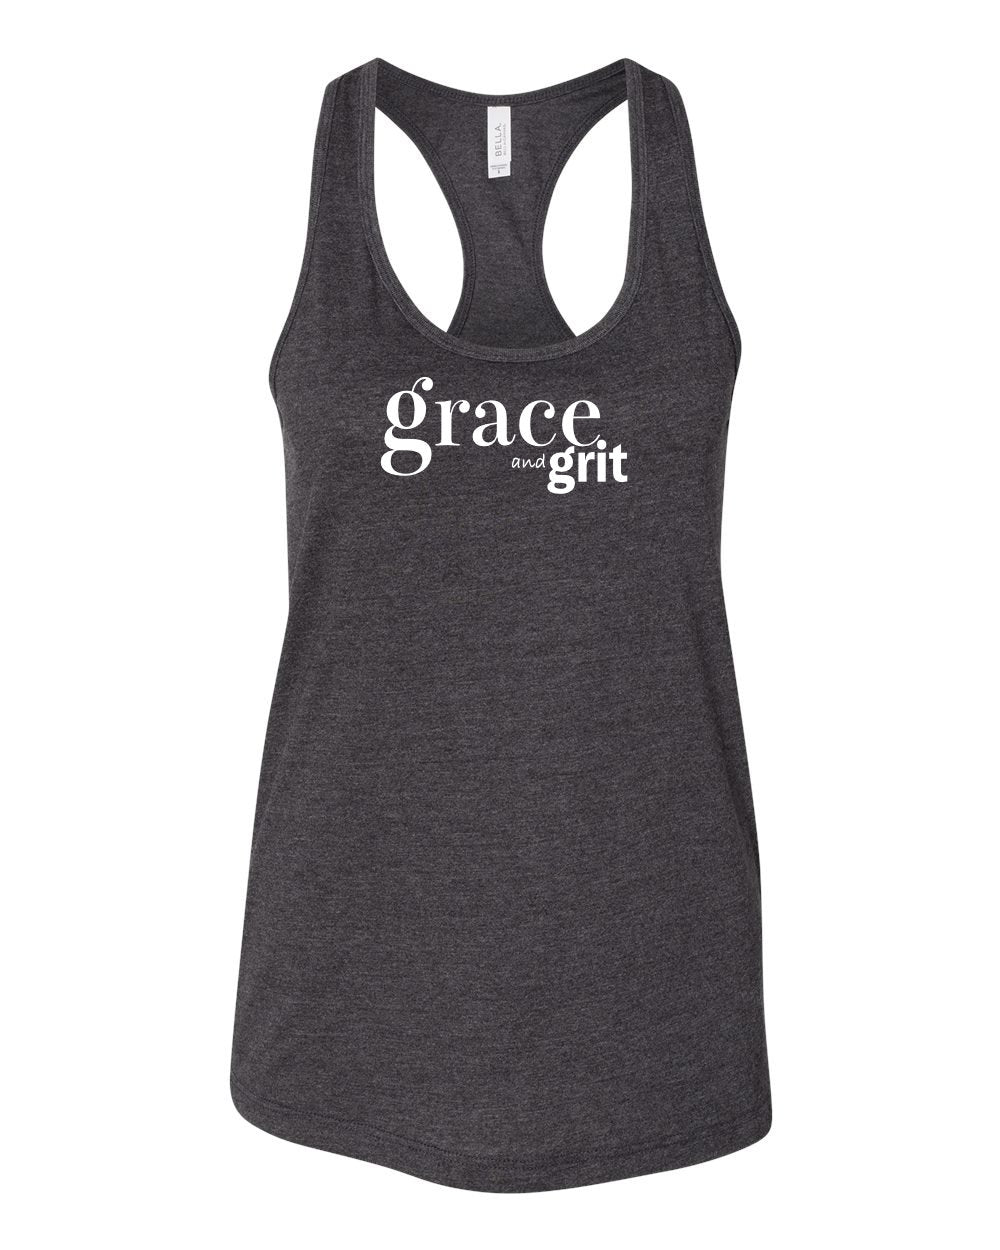 Grace and Grit - Tank Top